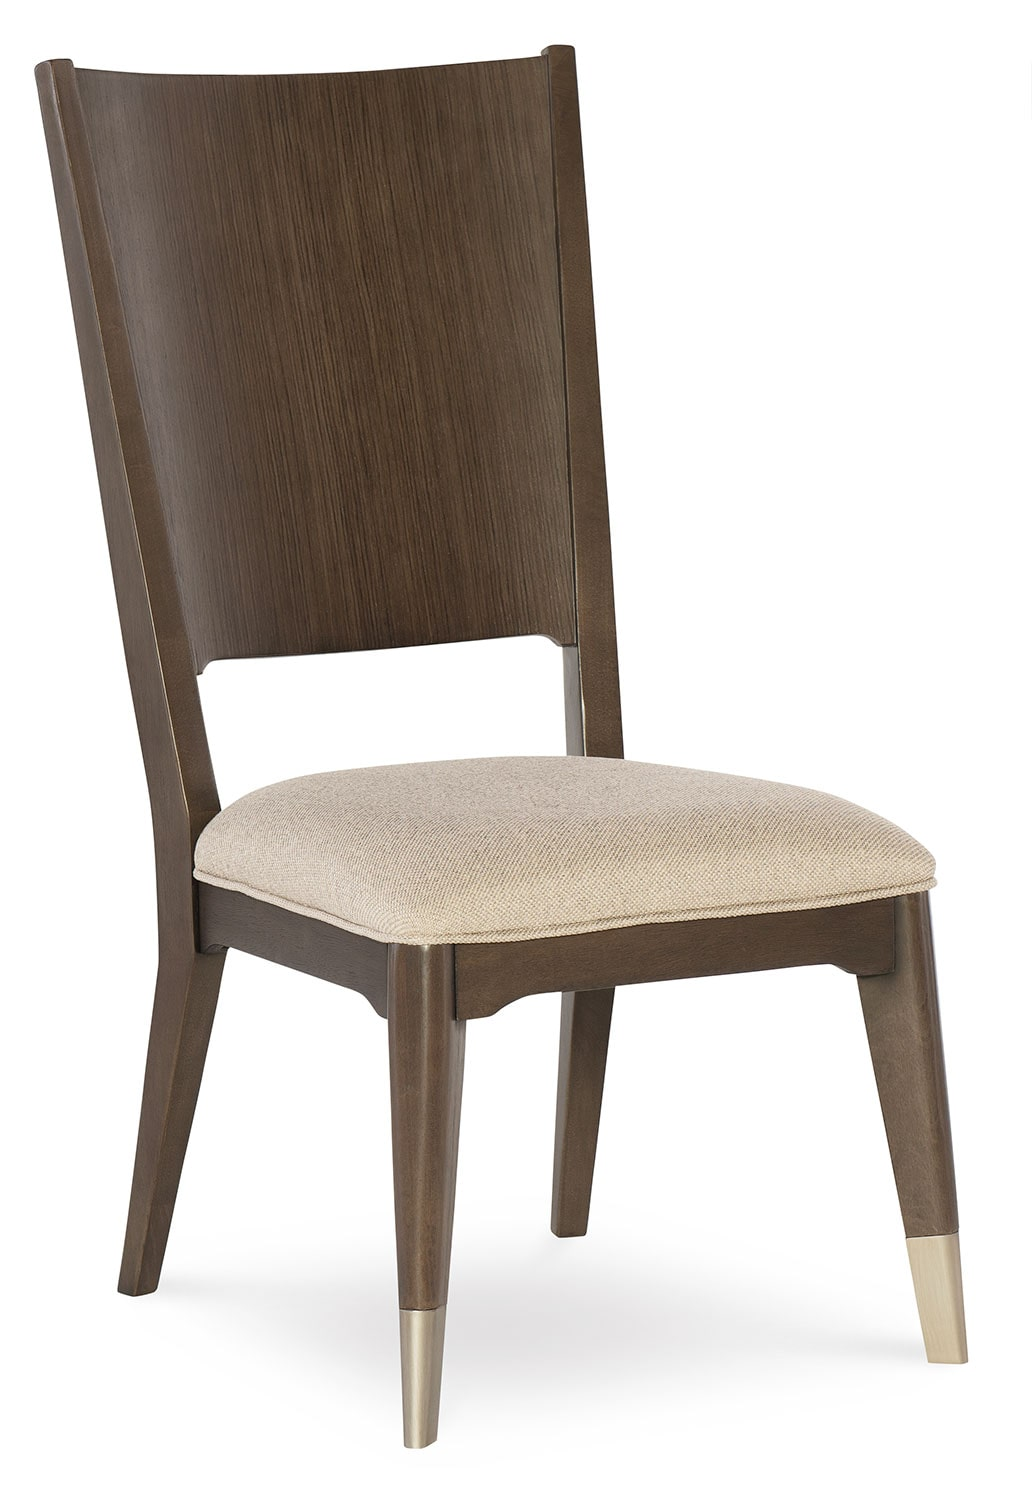 Rachael Ray Soho Side Chair - Ash Brown